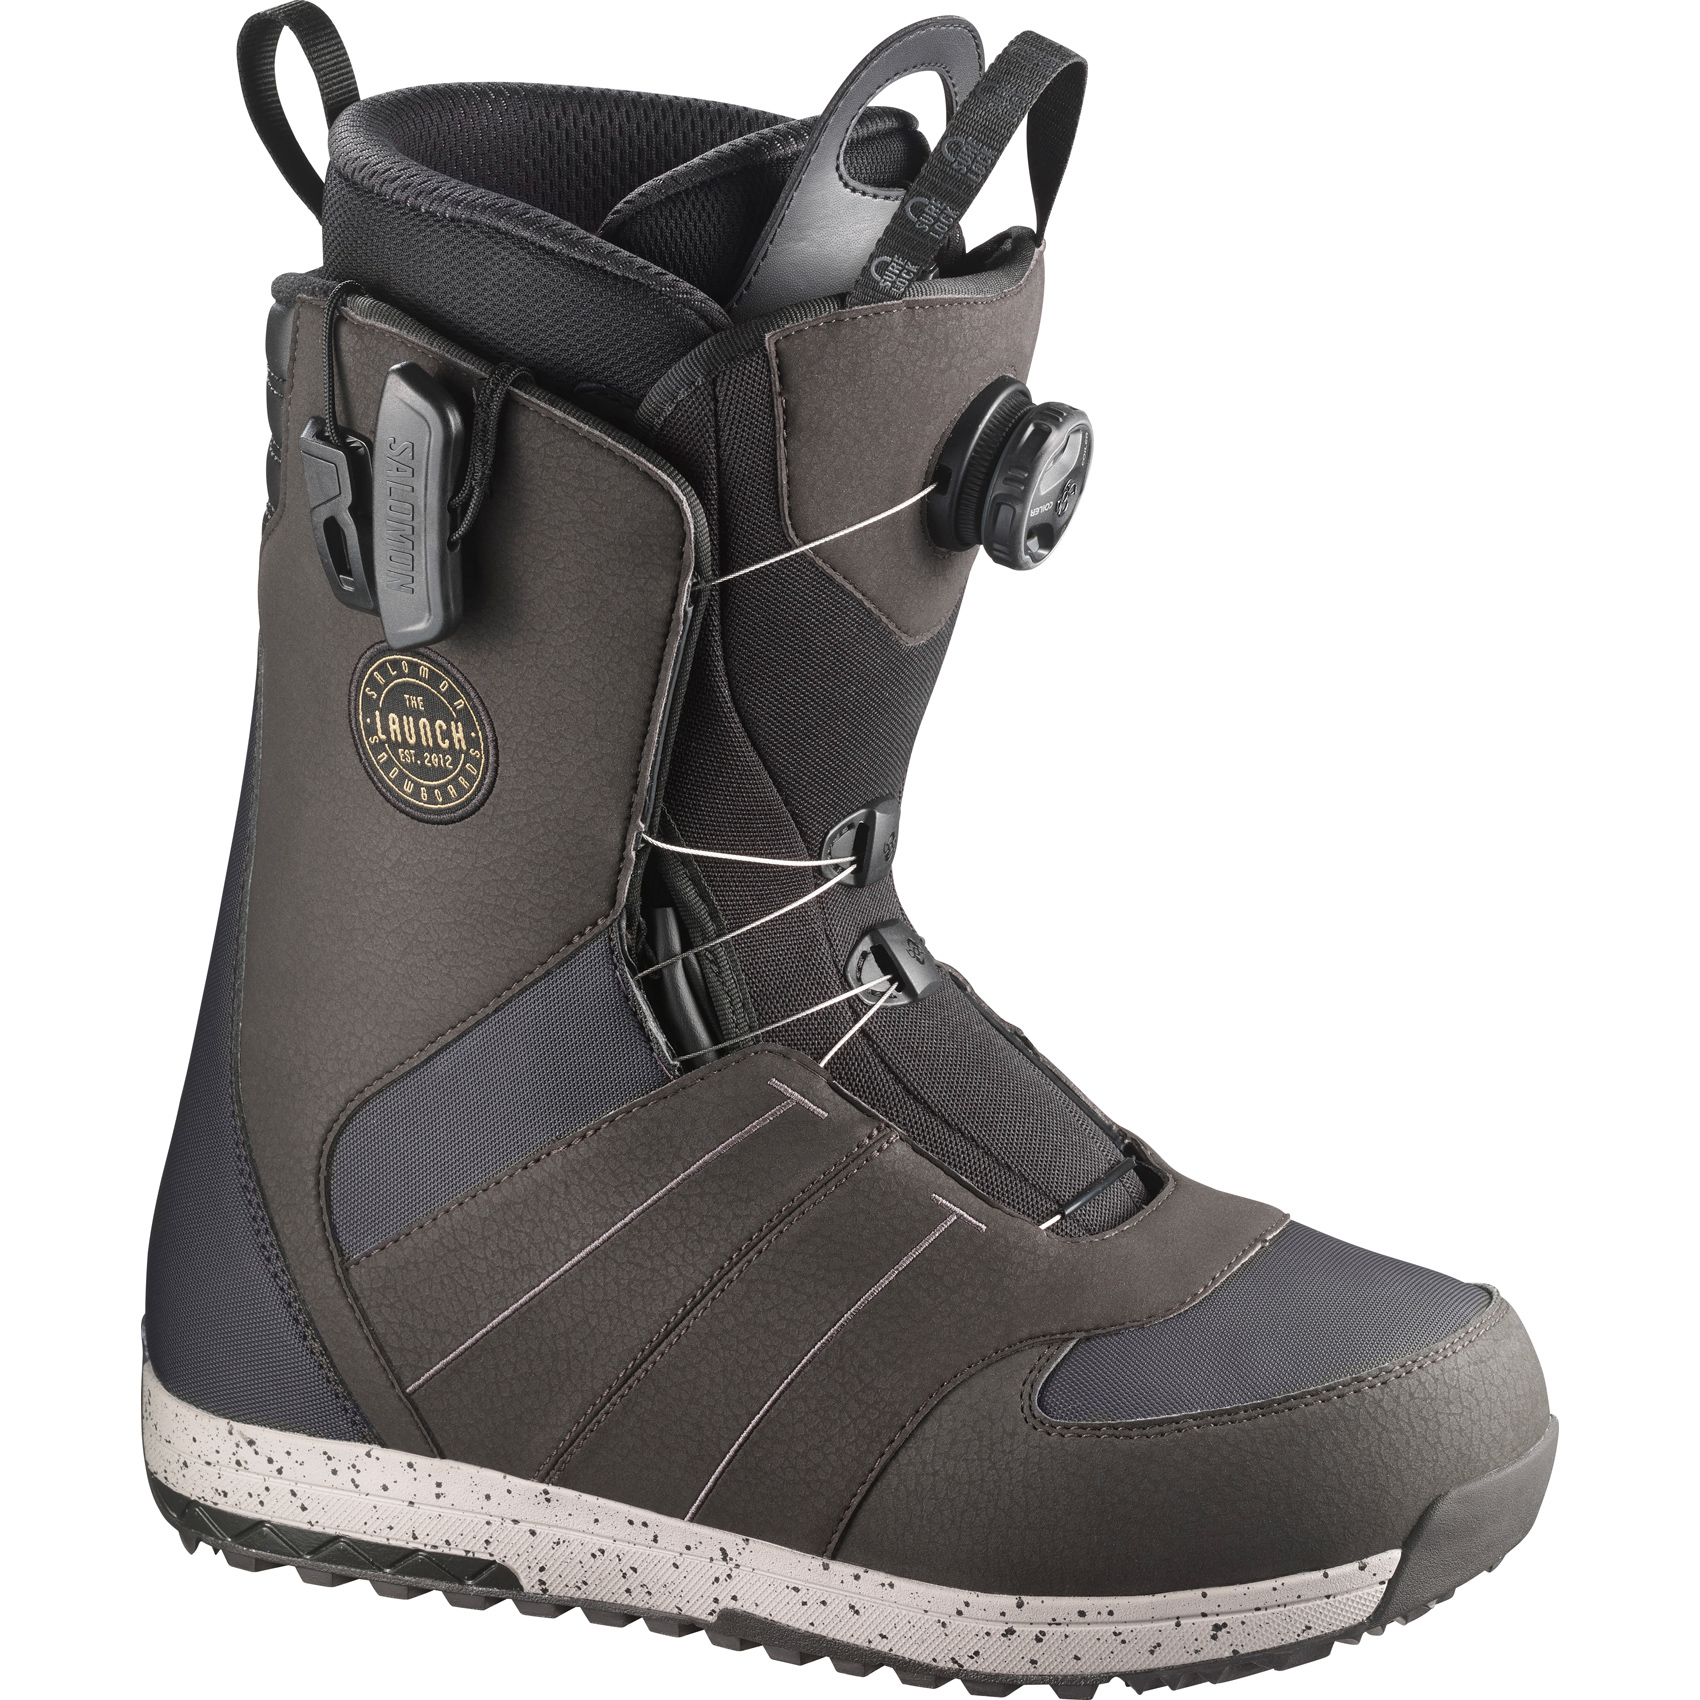 Salomon Launch BOA STR8JKT Mens Snowboard Boots UK 6.5 review